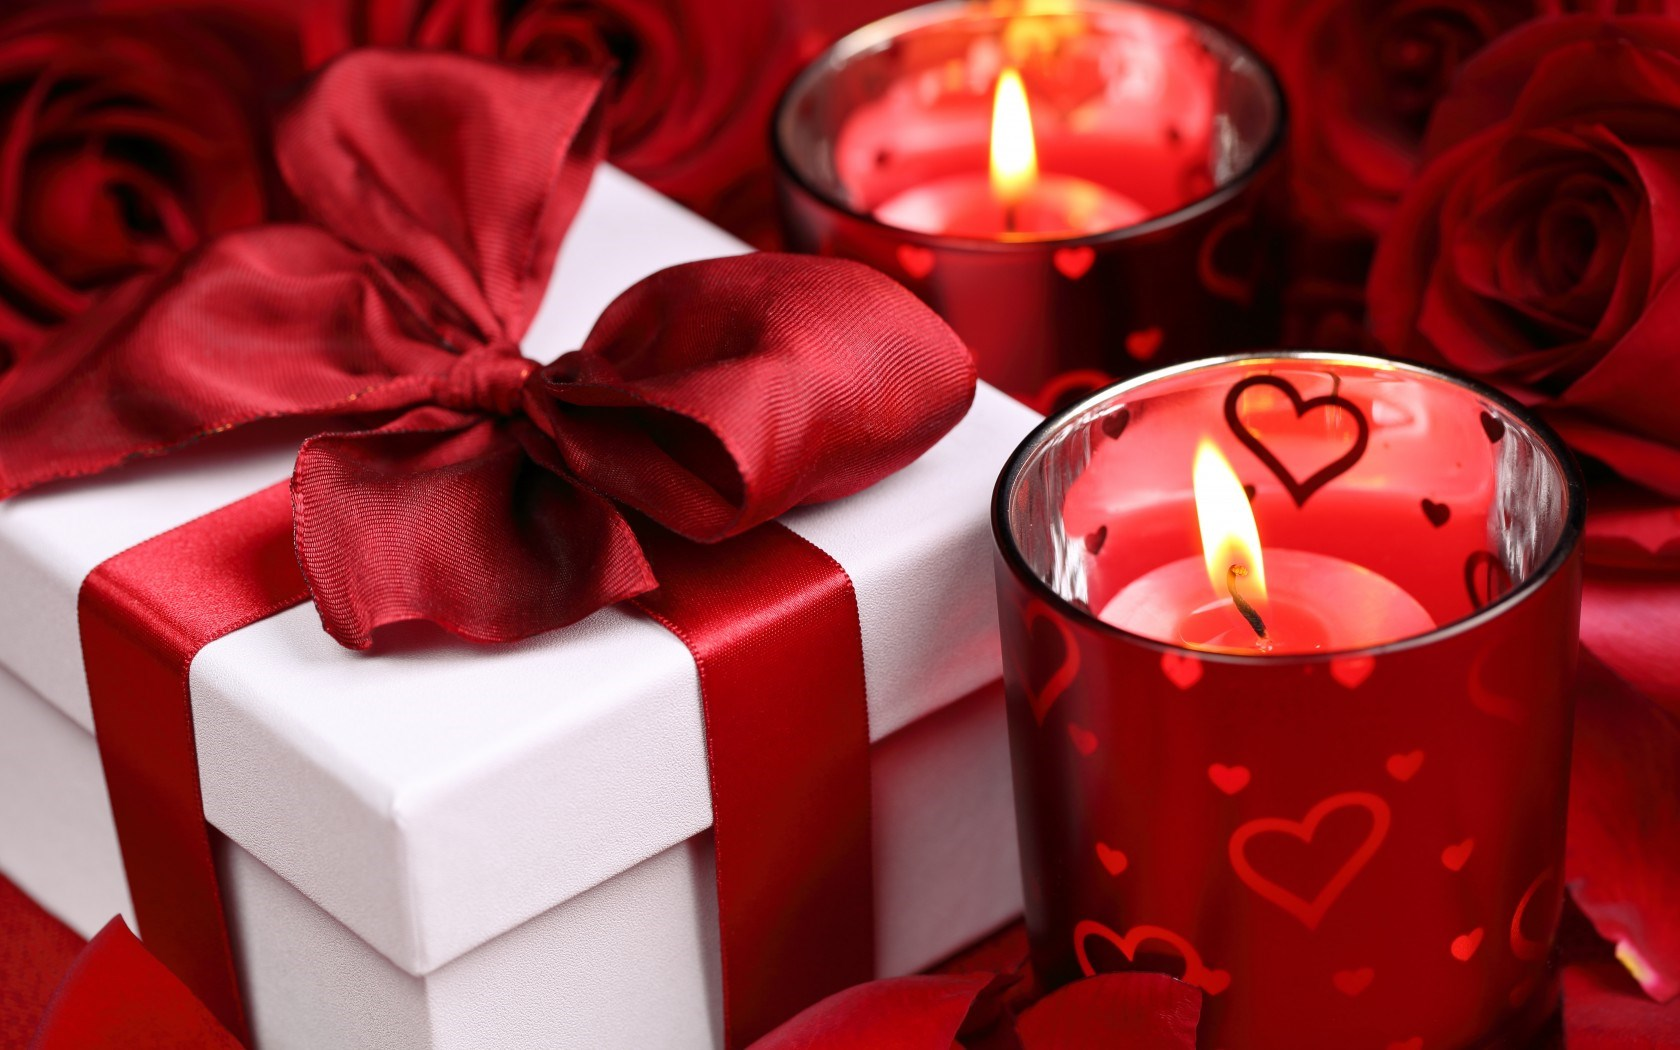 Roses Gift Candles Hearts Valentines Day Love